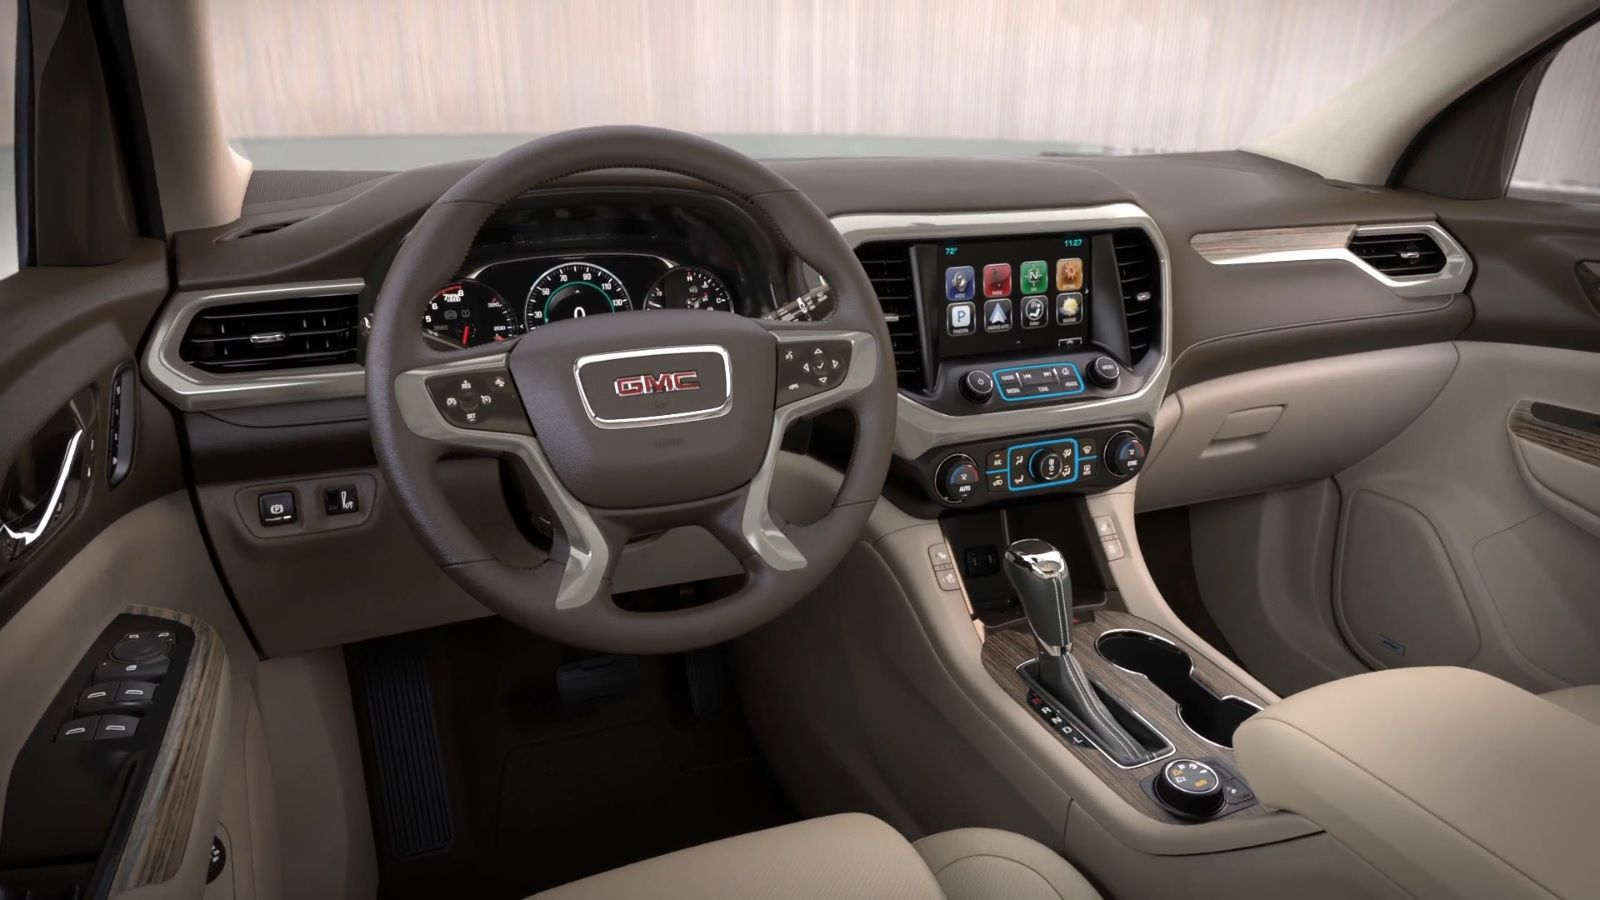 2017 Gmc Acadia Interior Best New Cars Gmc Acadia Denali